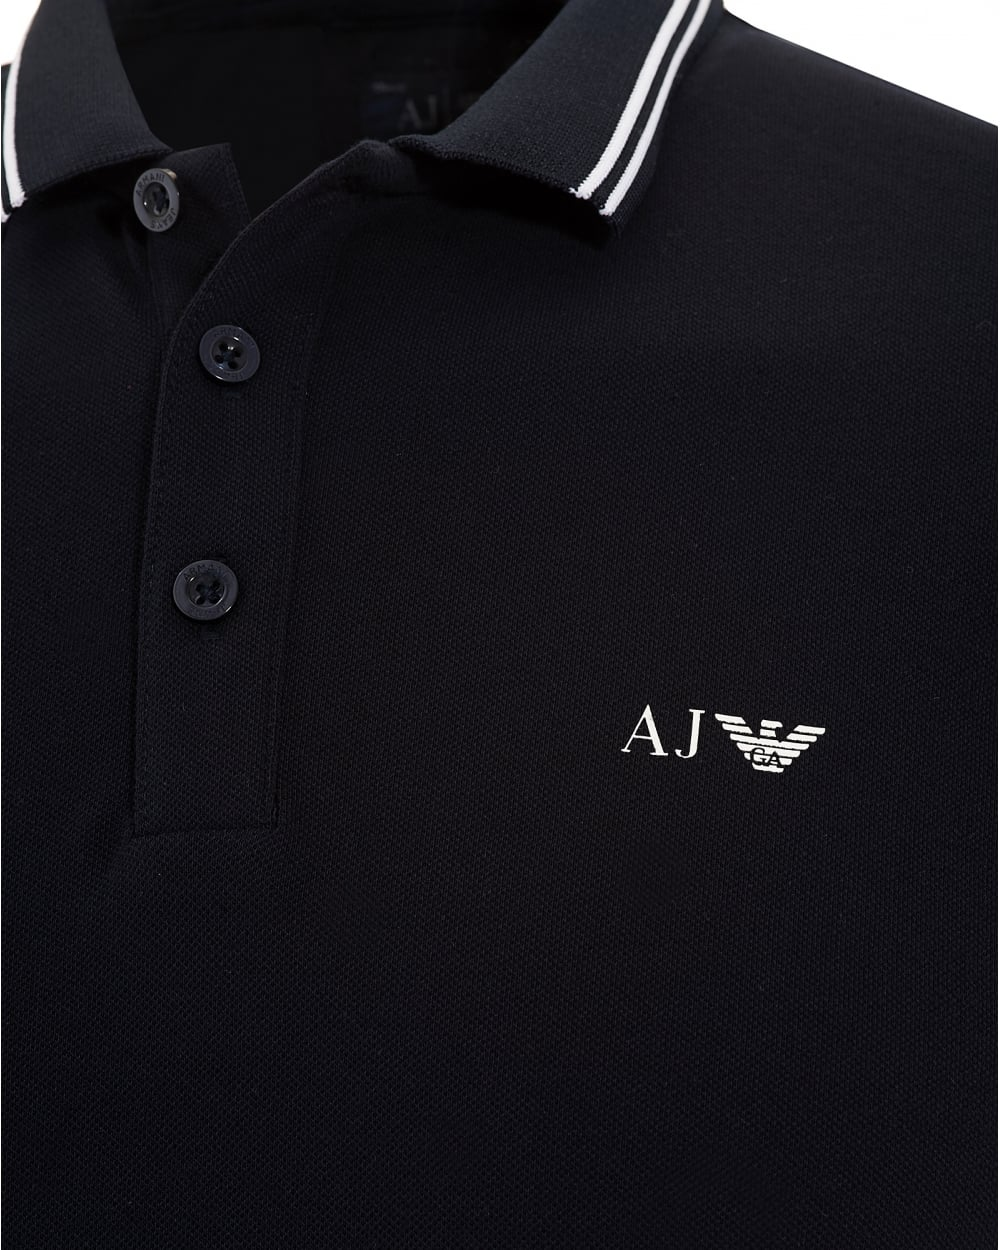 Armani Jeans Mens Tipped Polo Shirt Navy Blue Short Sleeved Polo